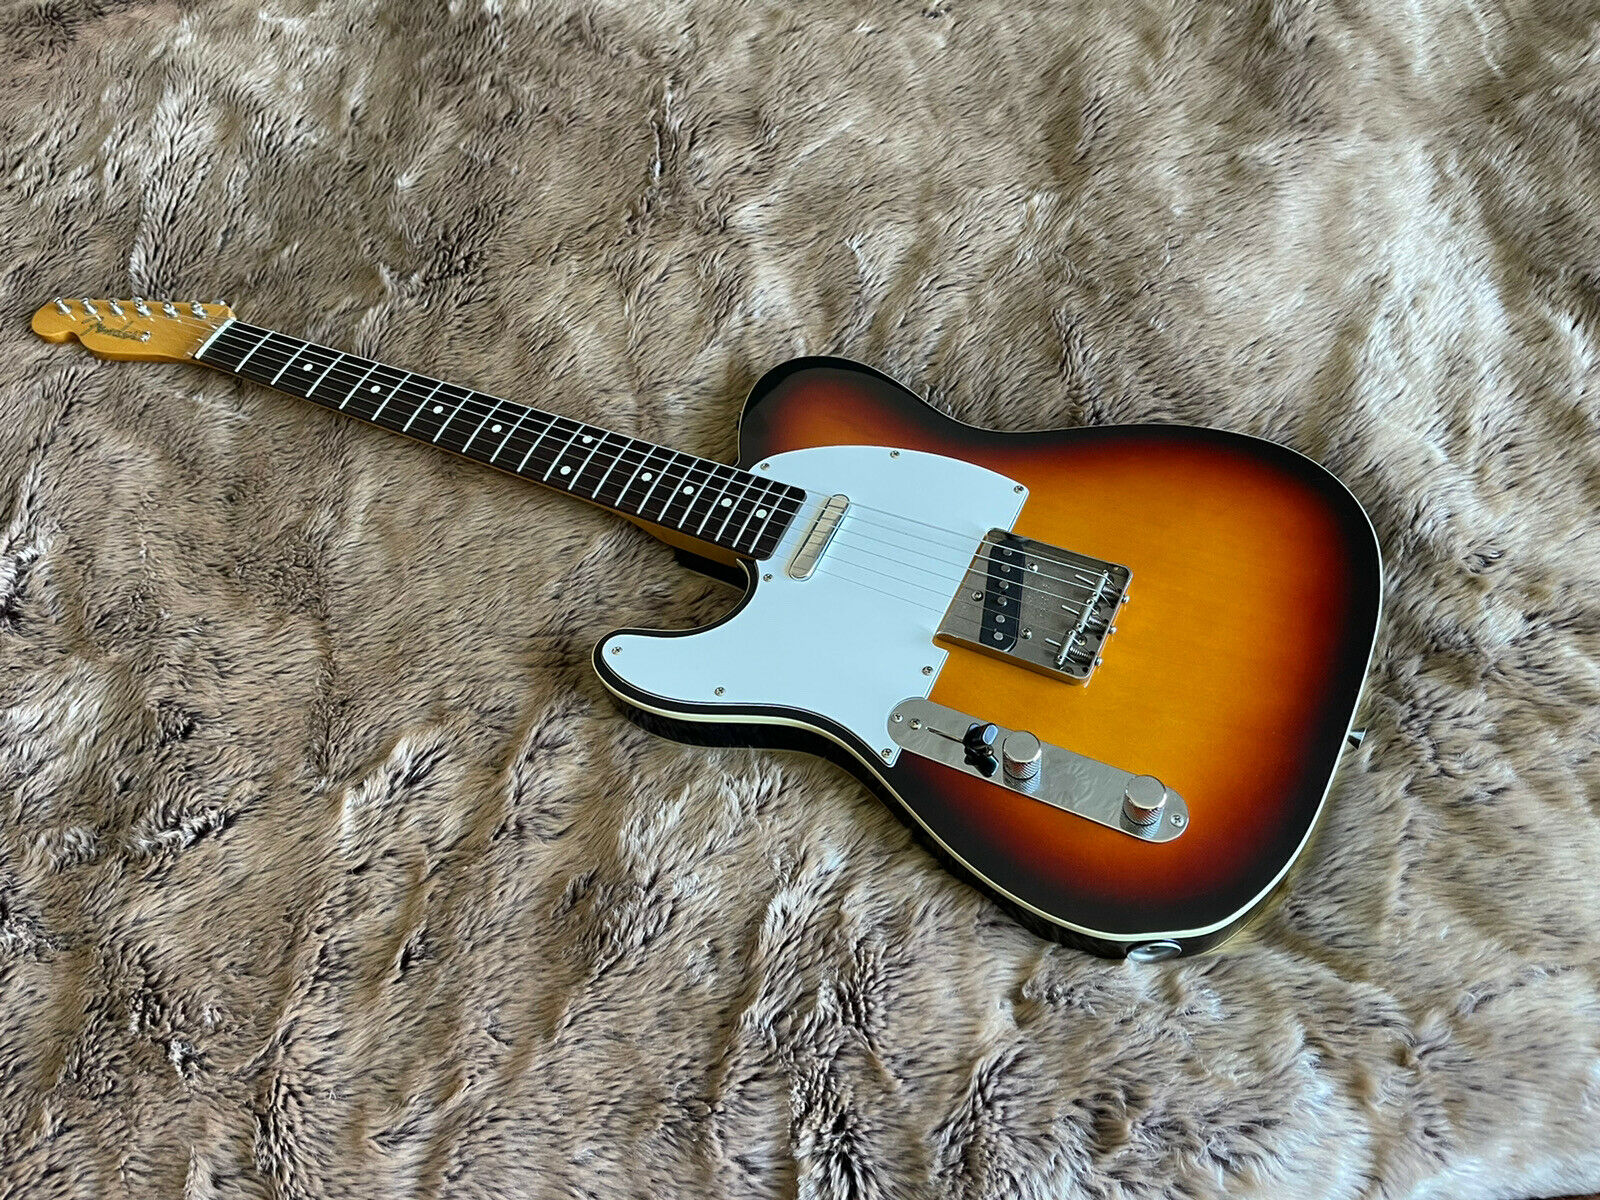 This pre-owned left handed Fender Telecaster guitar is for sale - Left handed ,lefty Fender Telecaster